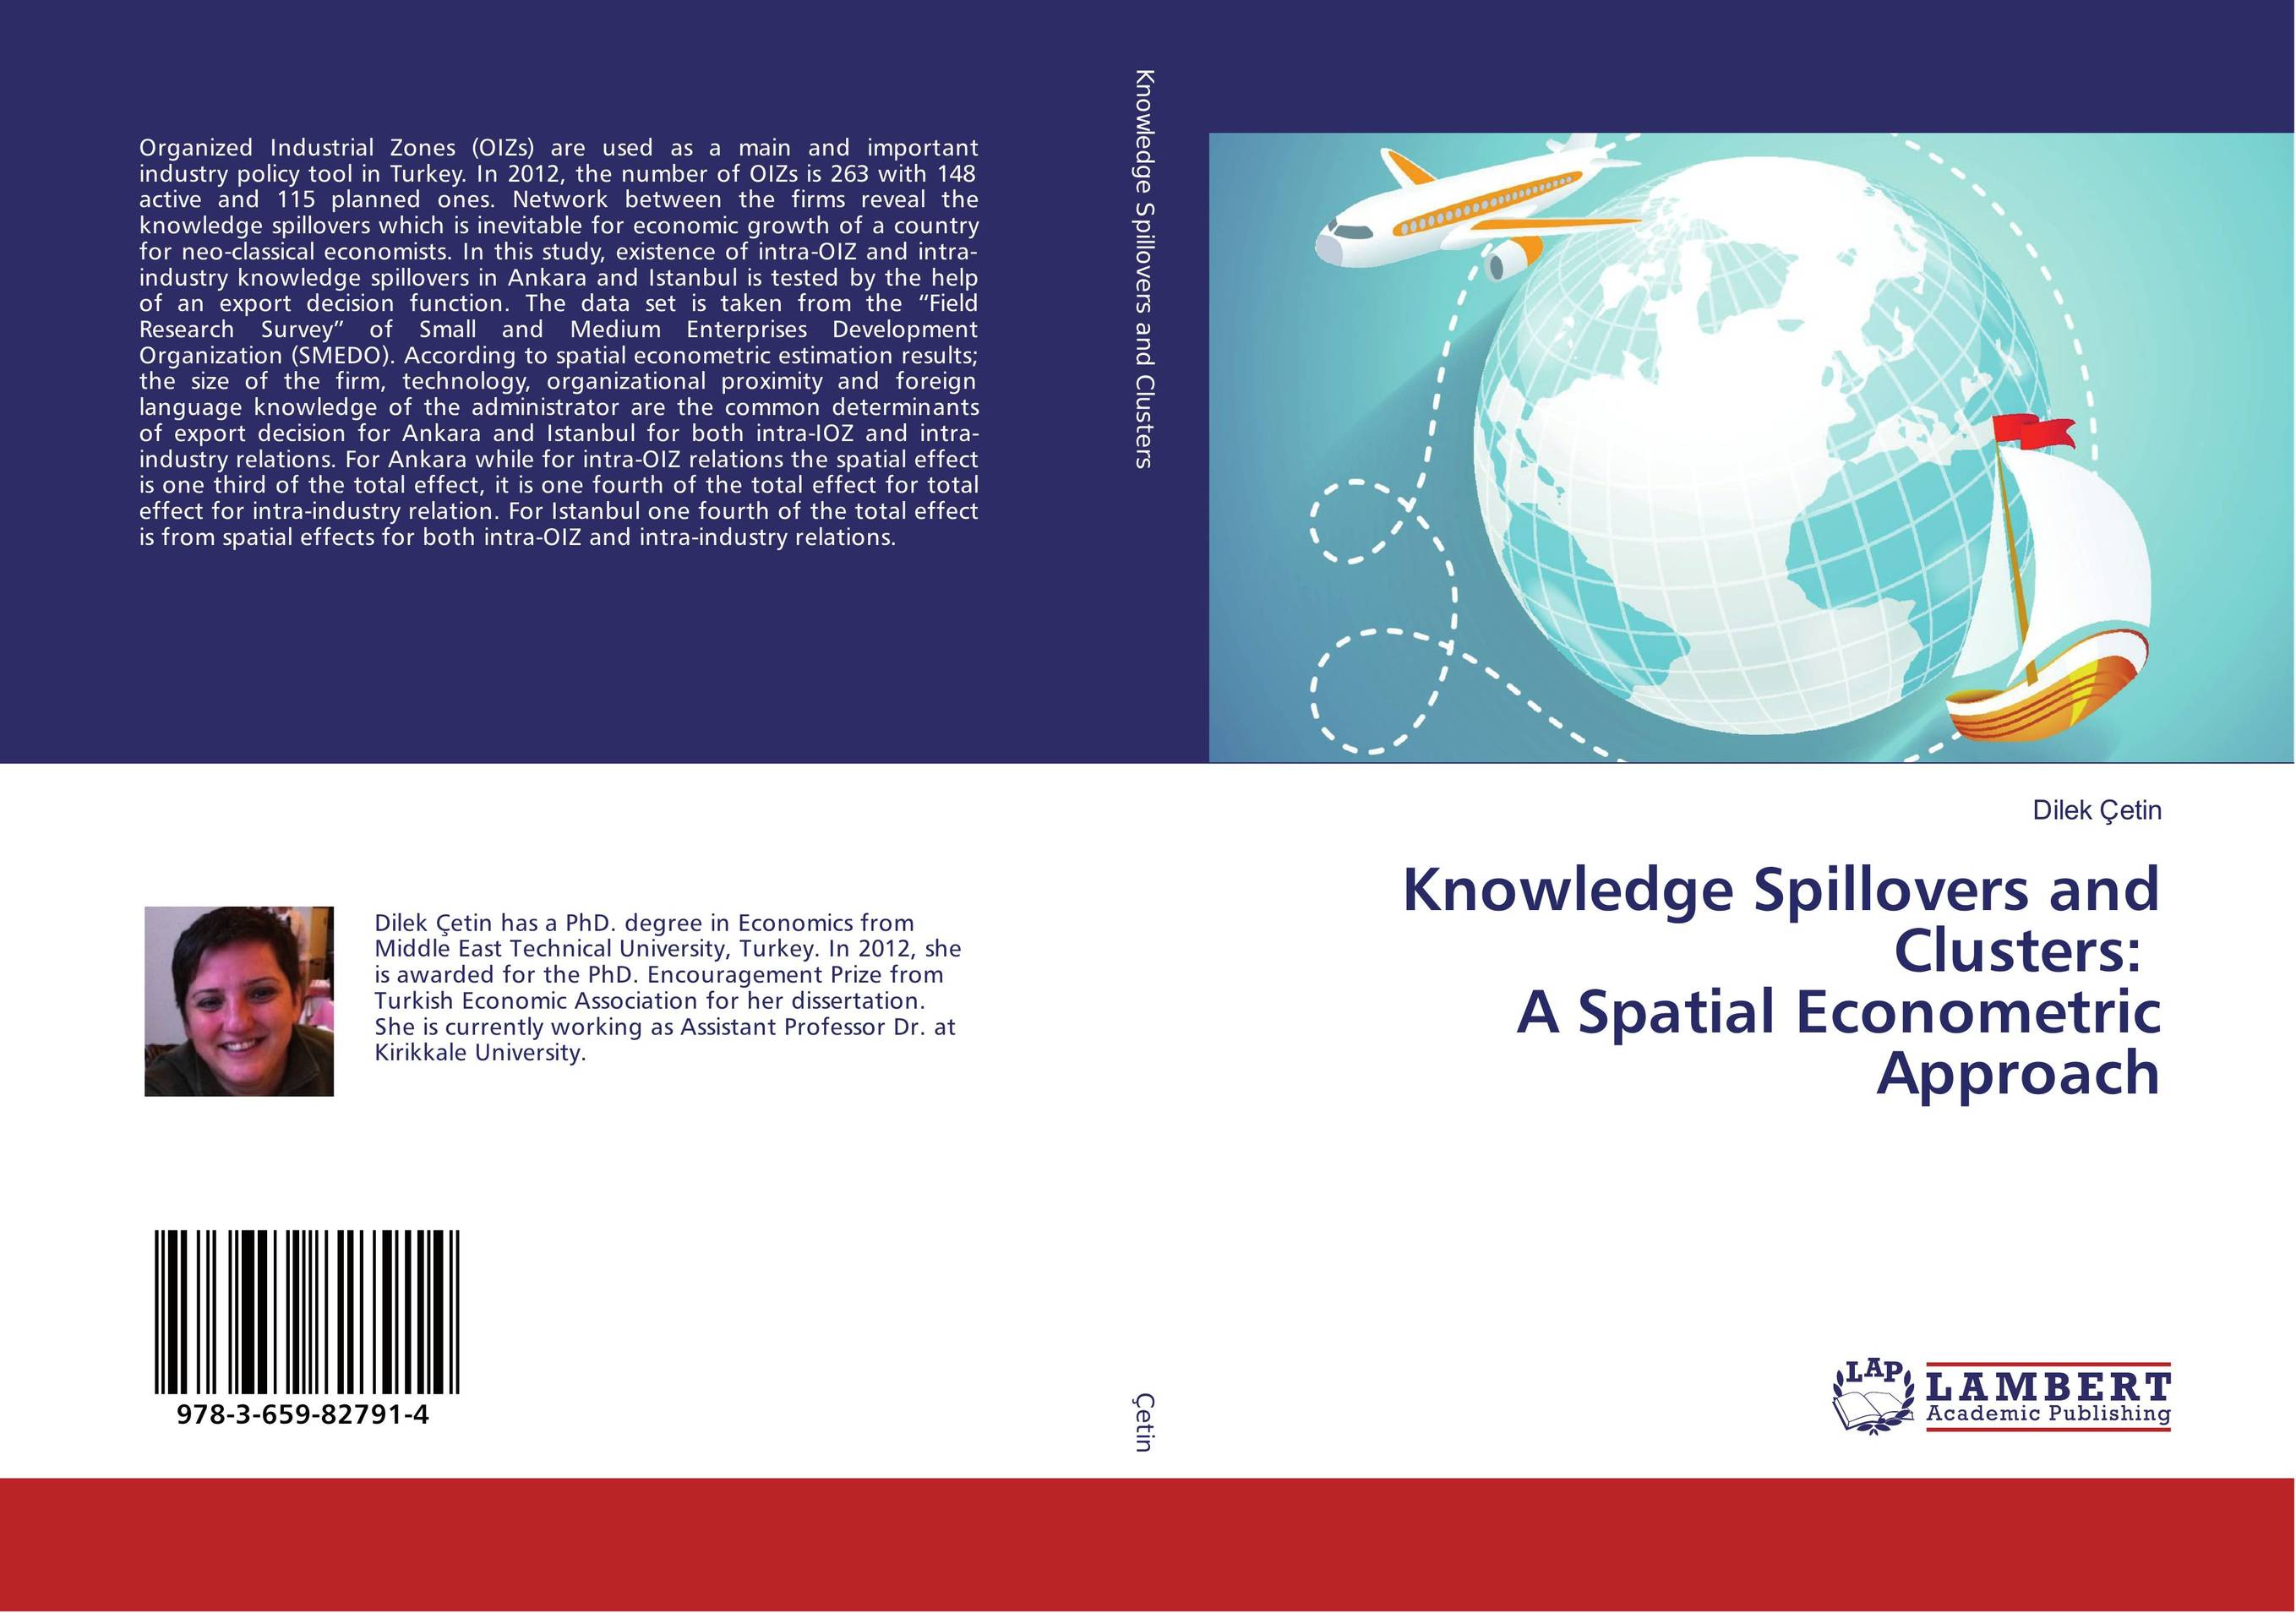 Knowledge Spillovers and Clusters: A Spatial Econometric Approach the bastard of istanbul